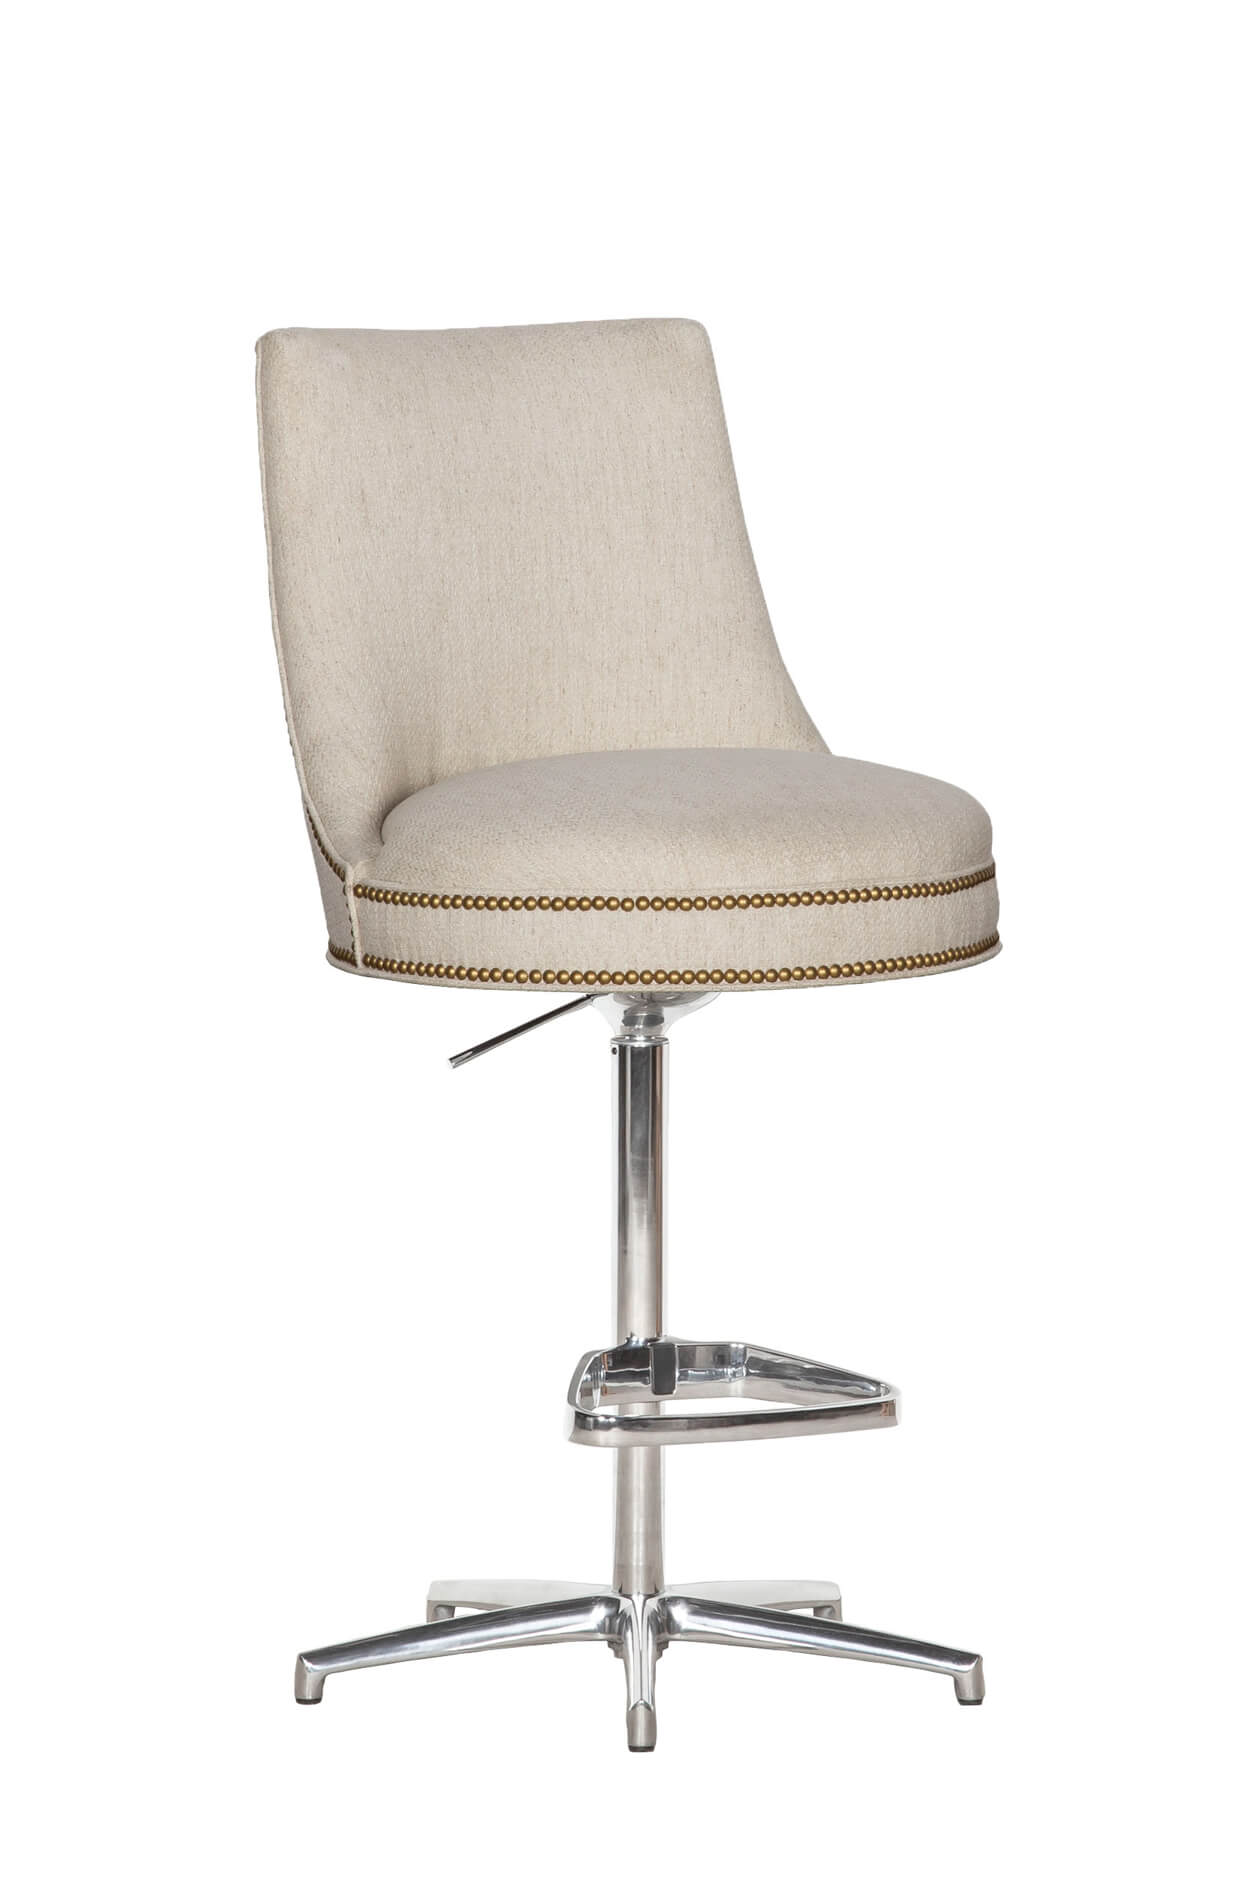 Fairfield's Vesper Adjustable Swivel Bar Stool Upholstered Back with Nailhead Trim in Nickel Metal Finish